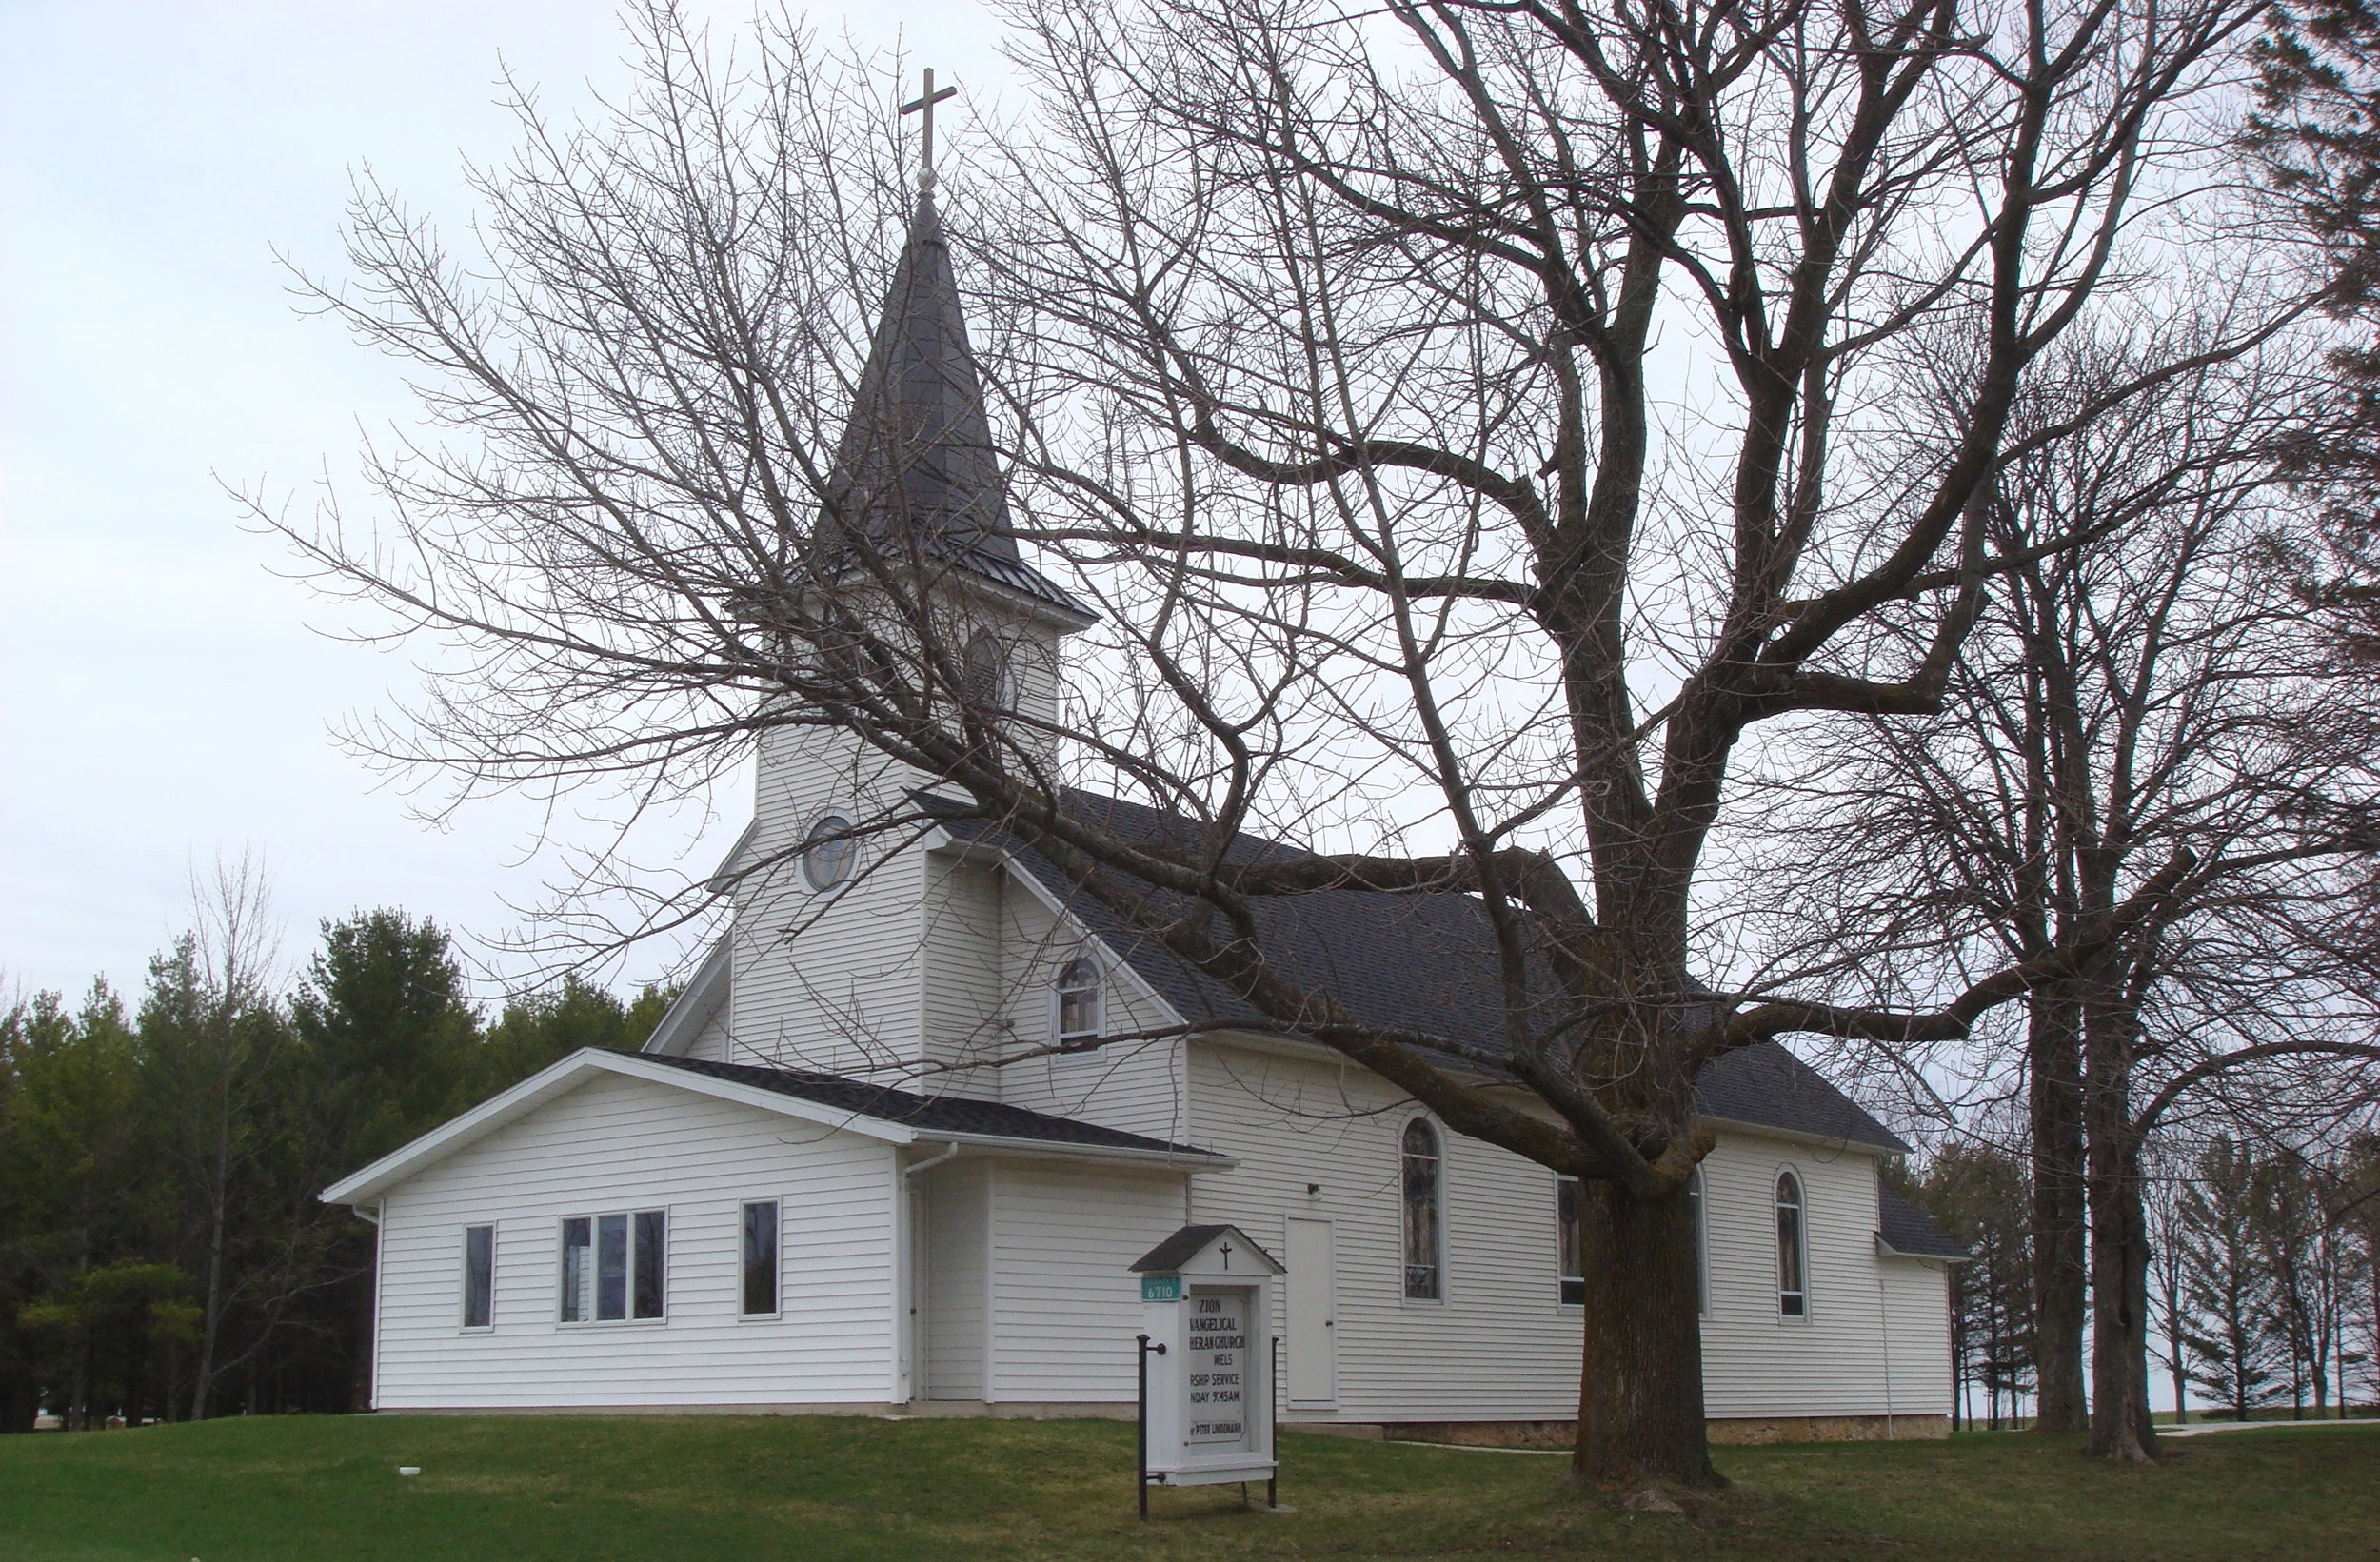 ZION LUTHERAN CHURCH - EGG HARBOR, WISCONSIN